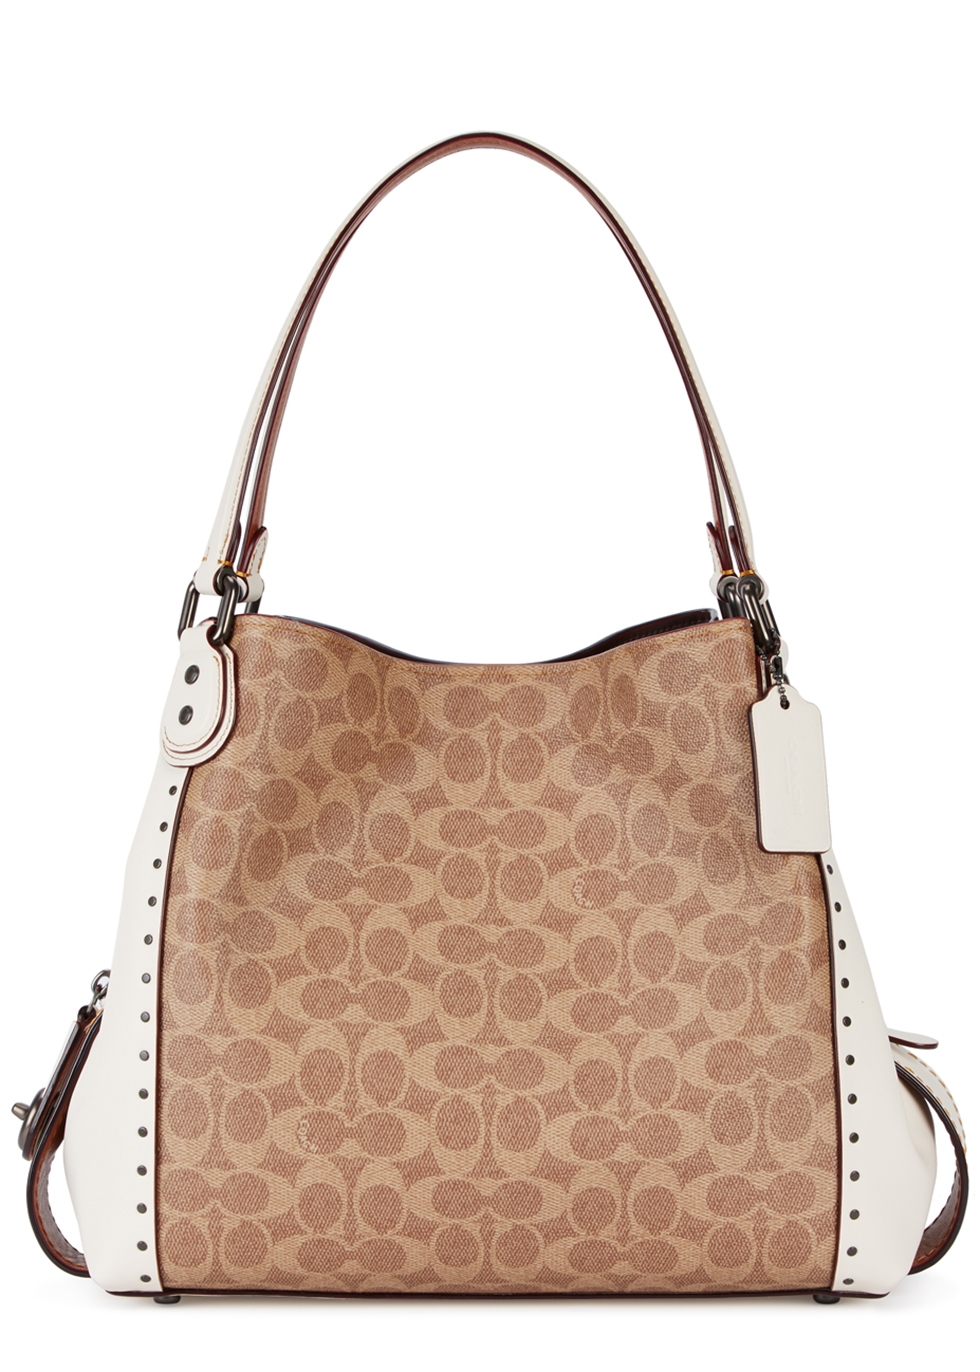 EDIE 31 IVORY PANELLED LEATHER TOTE